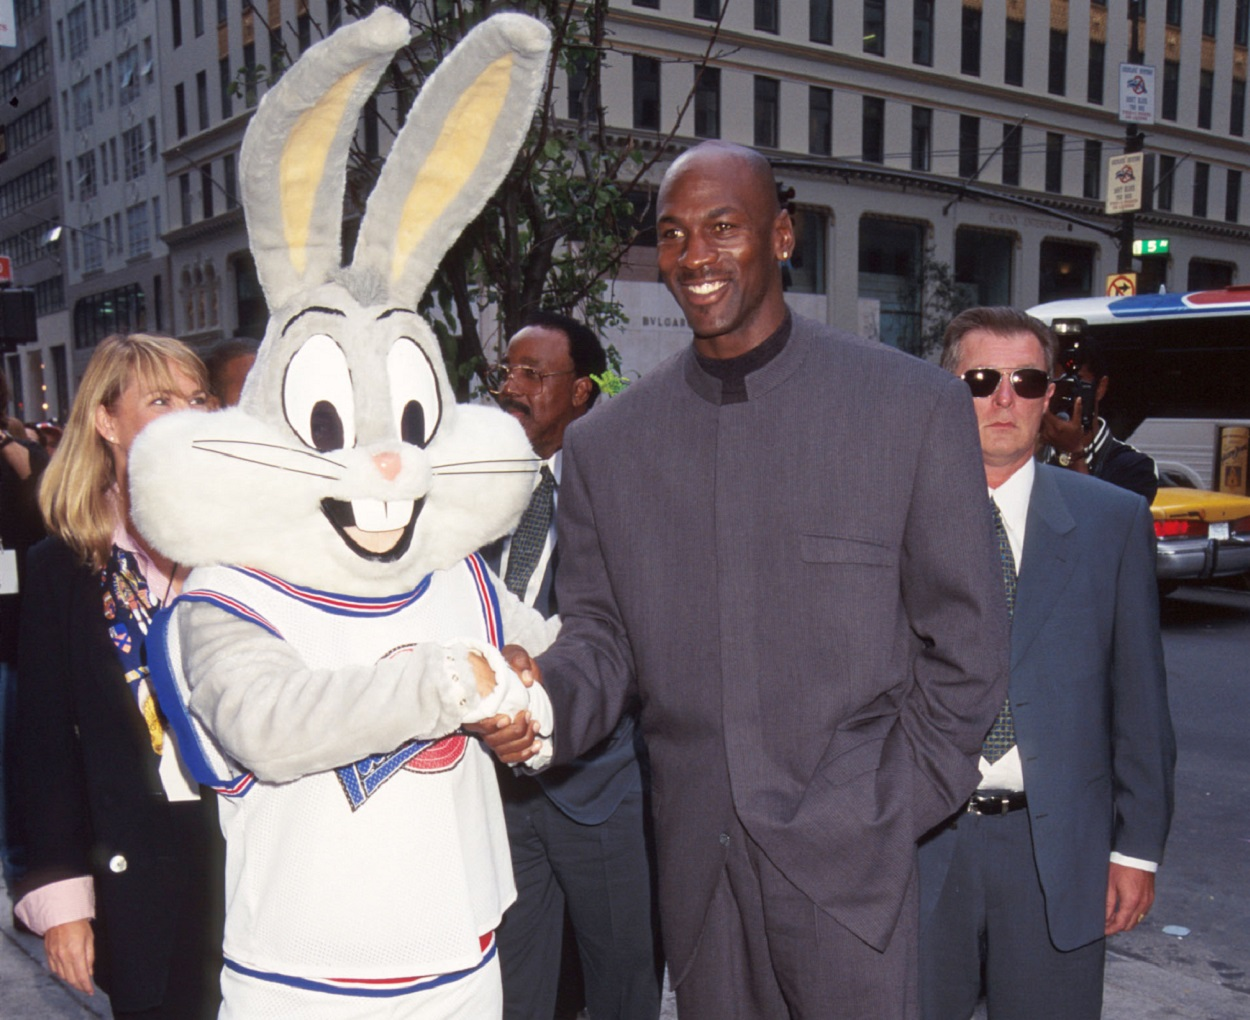 Michael Jordan shakes hands with Bugs Bunny in 1996, the year 'Space Jam' was released